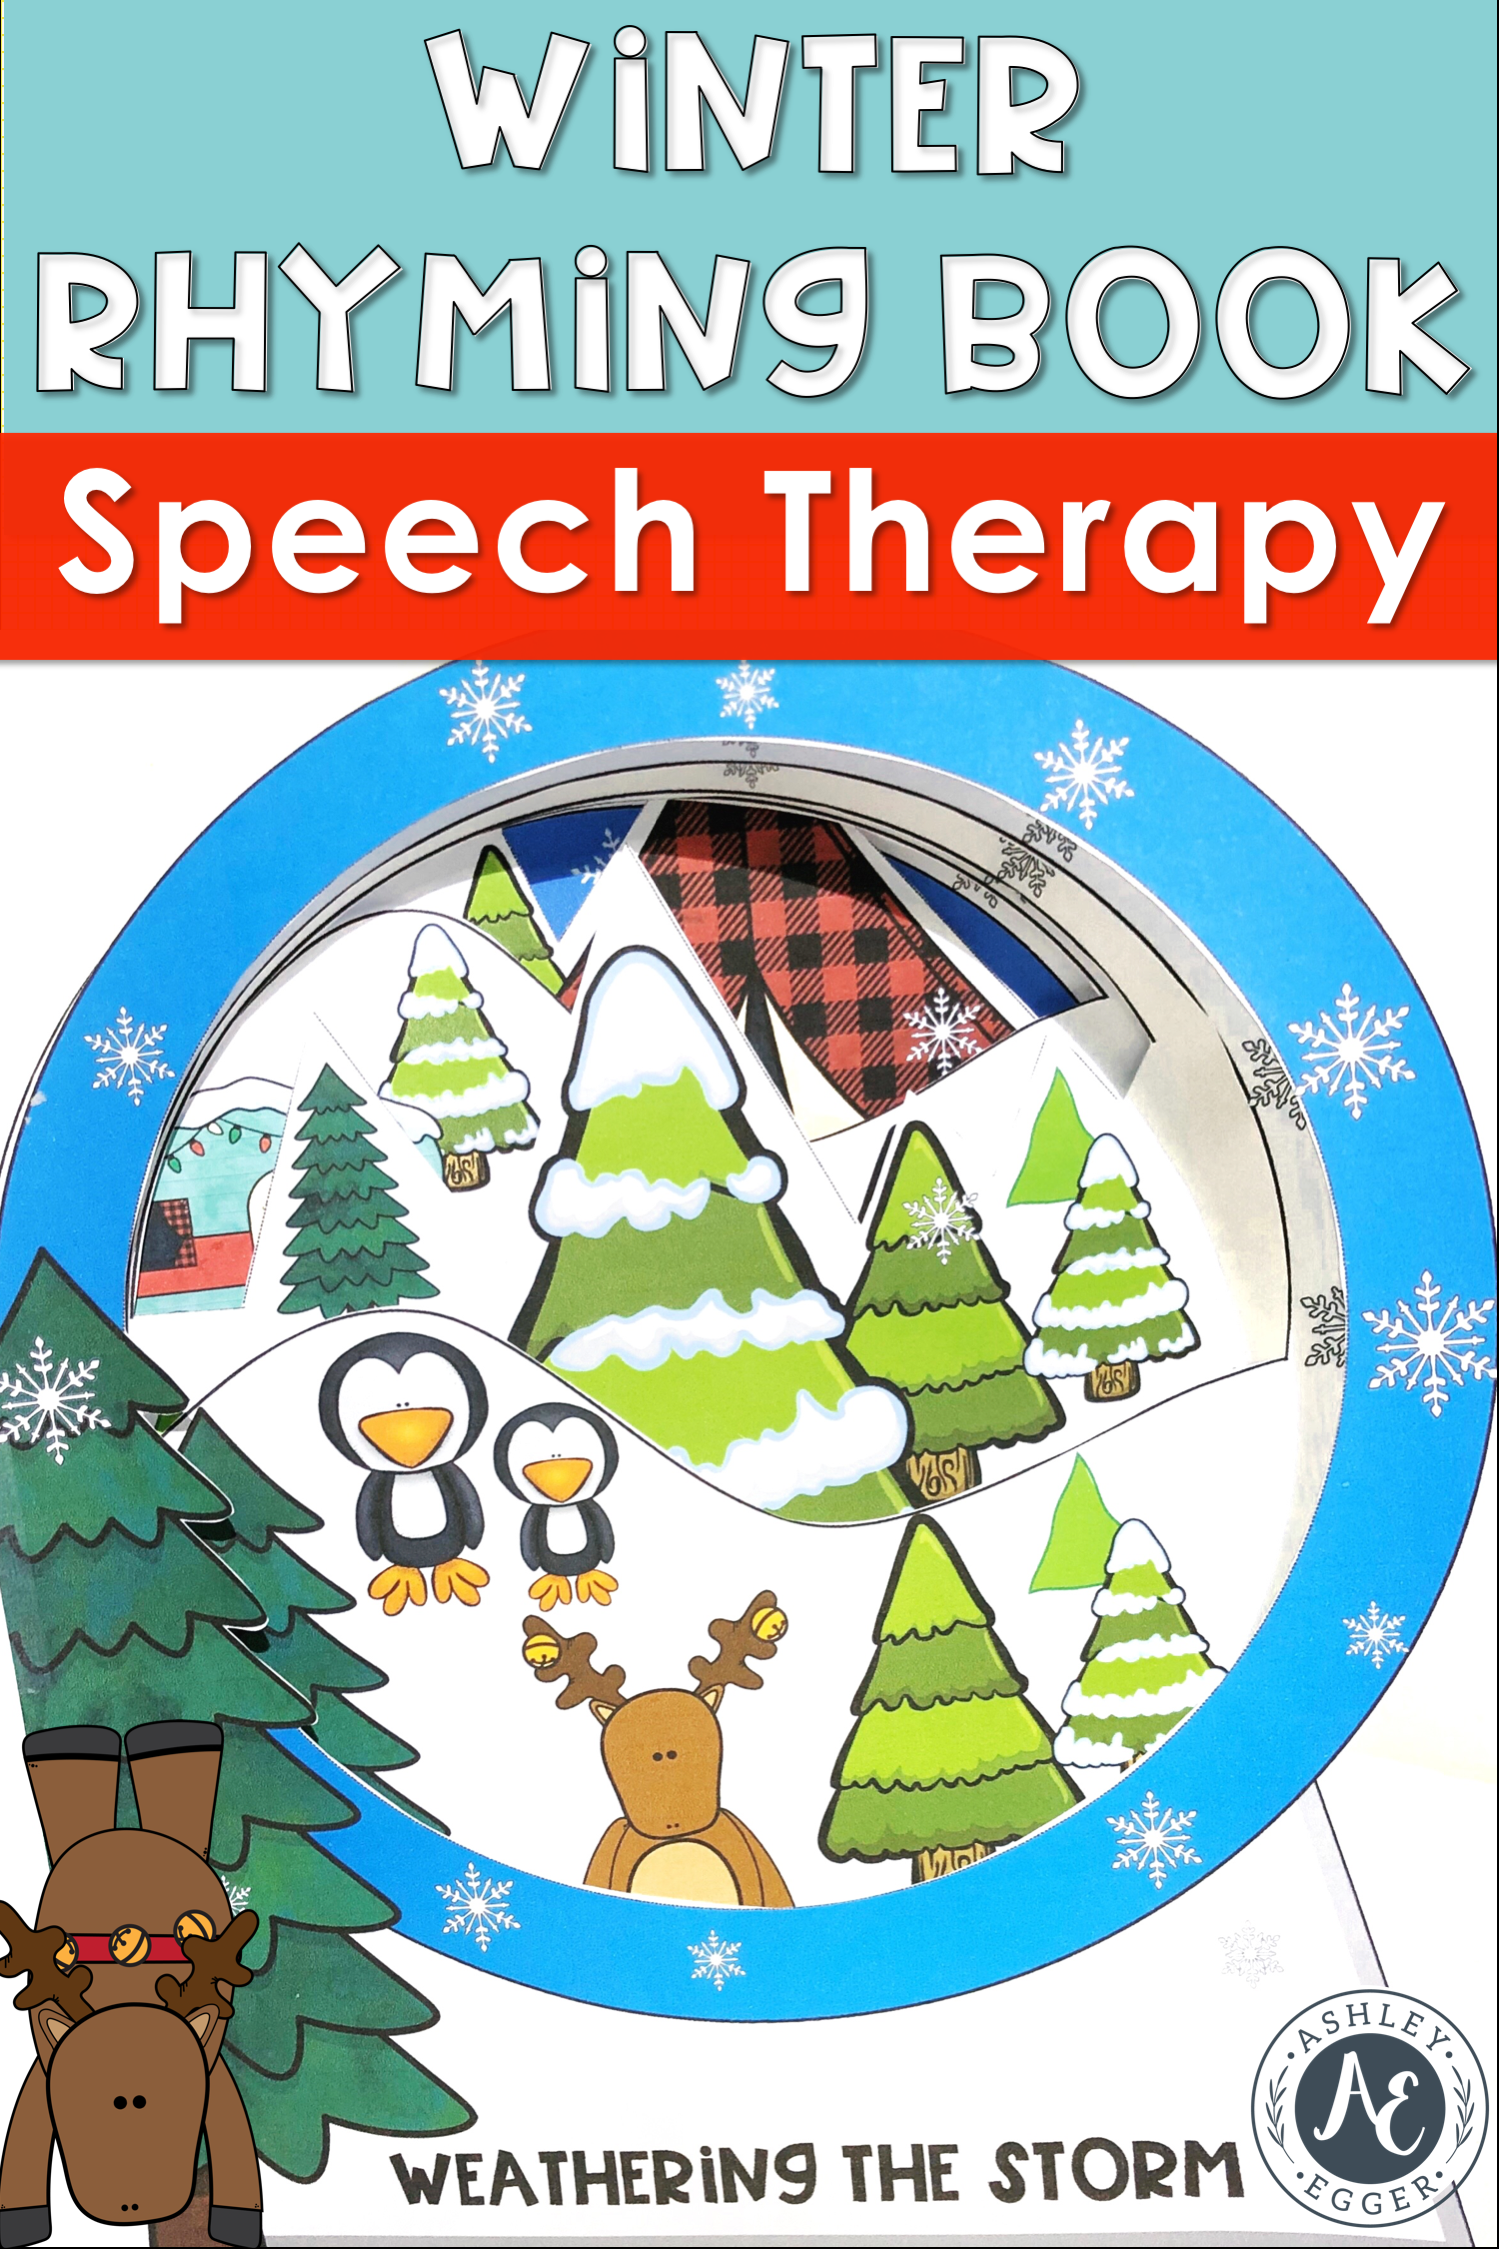 Winter Activities And Rhyming Book For Speech Therapy